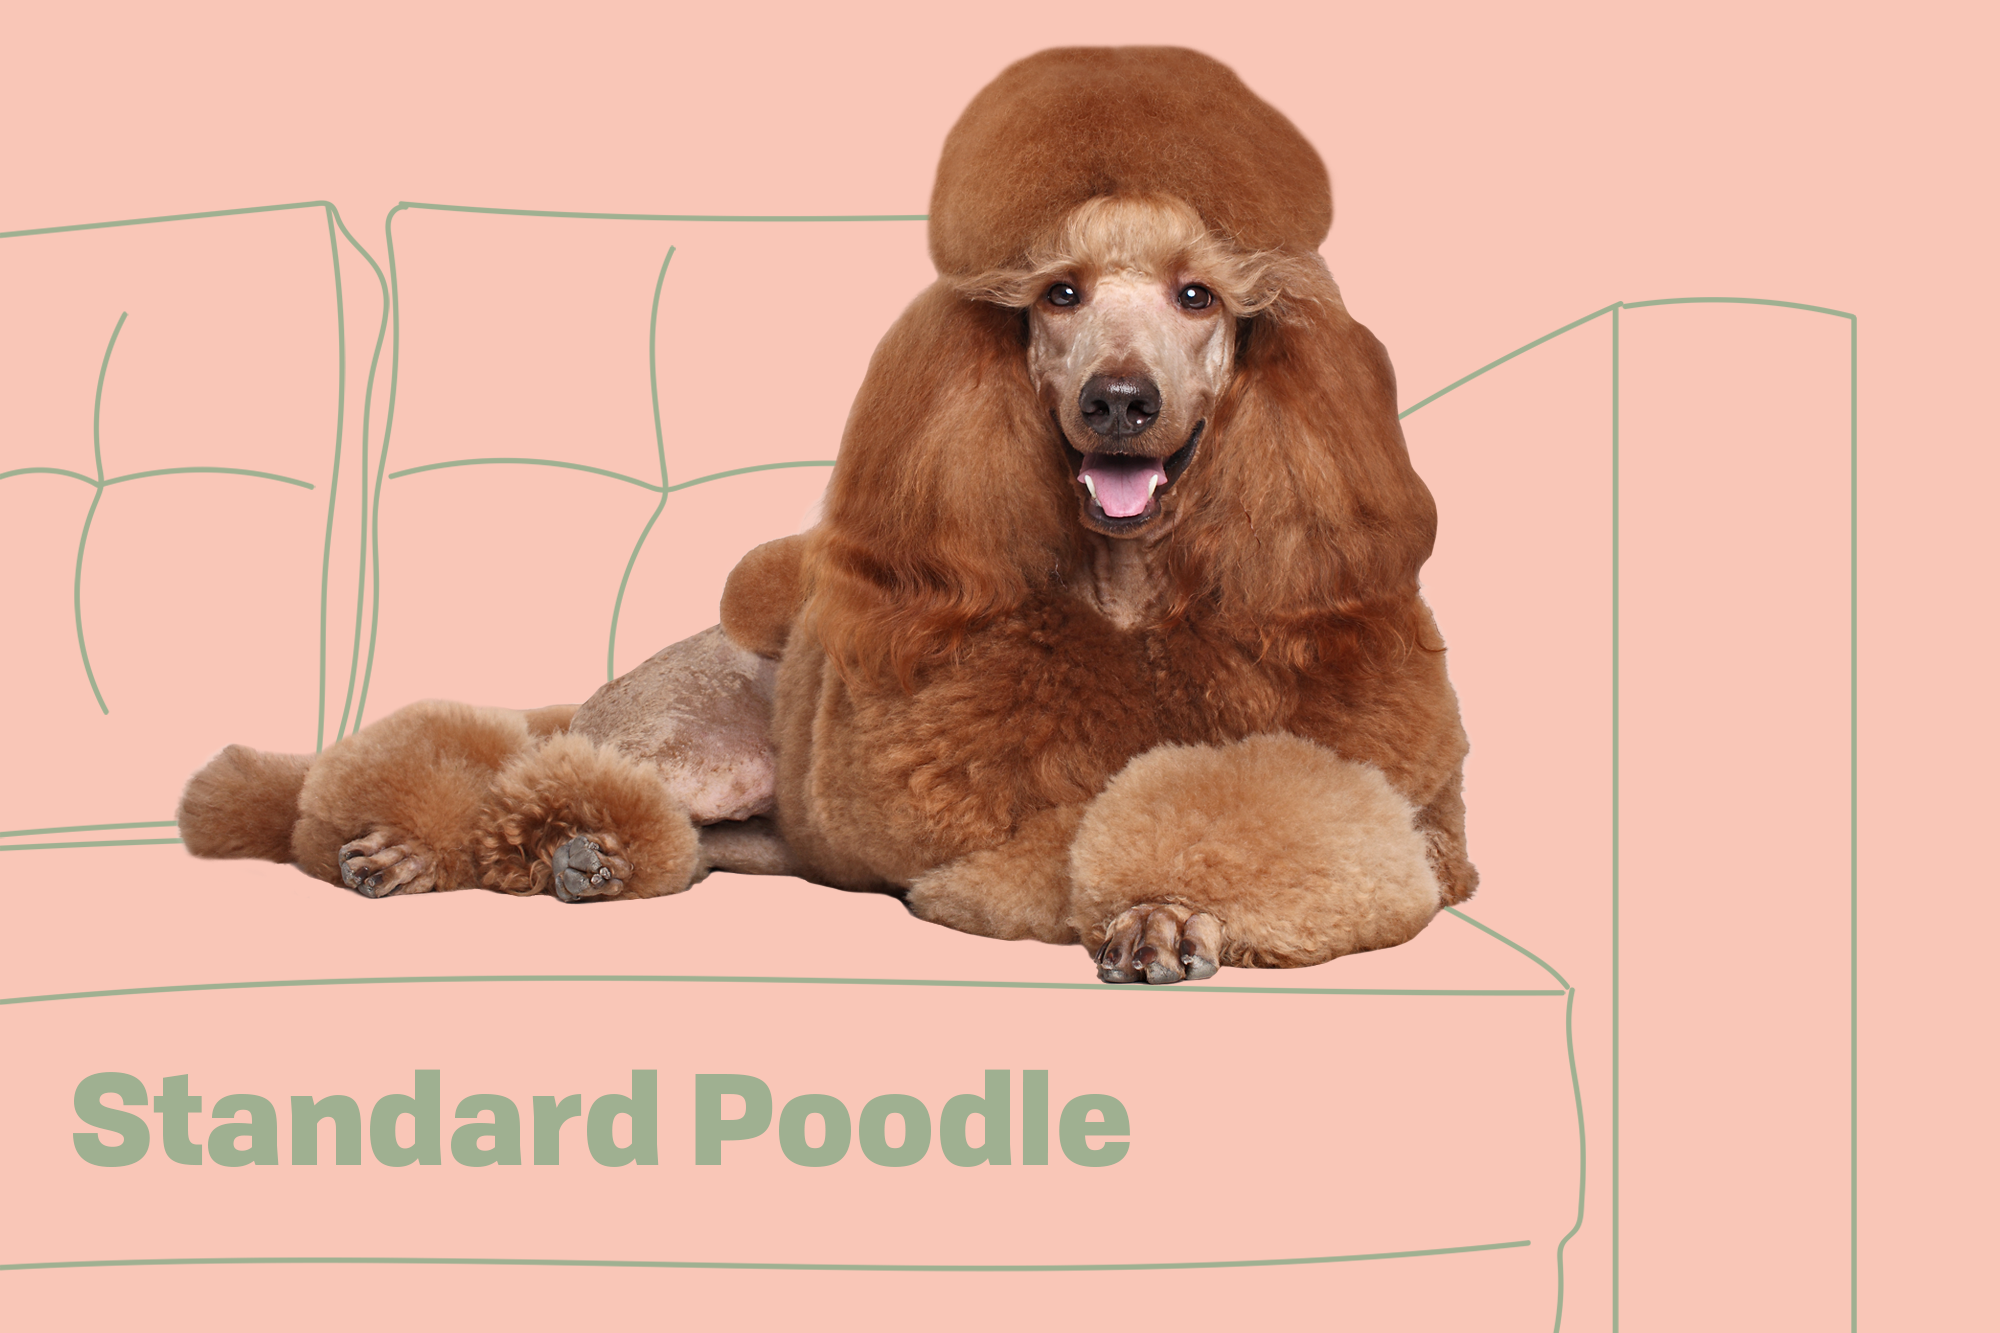 Standard Poodle Dog Breed Information Characteristics Daily Paws